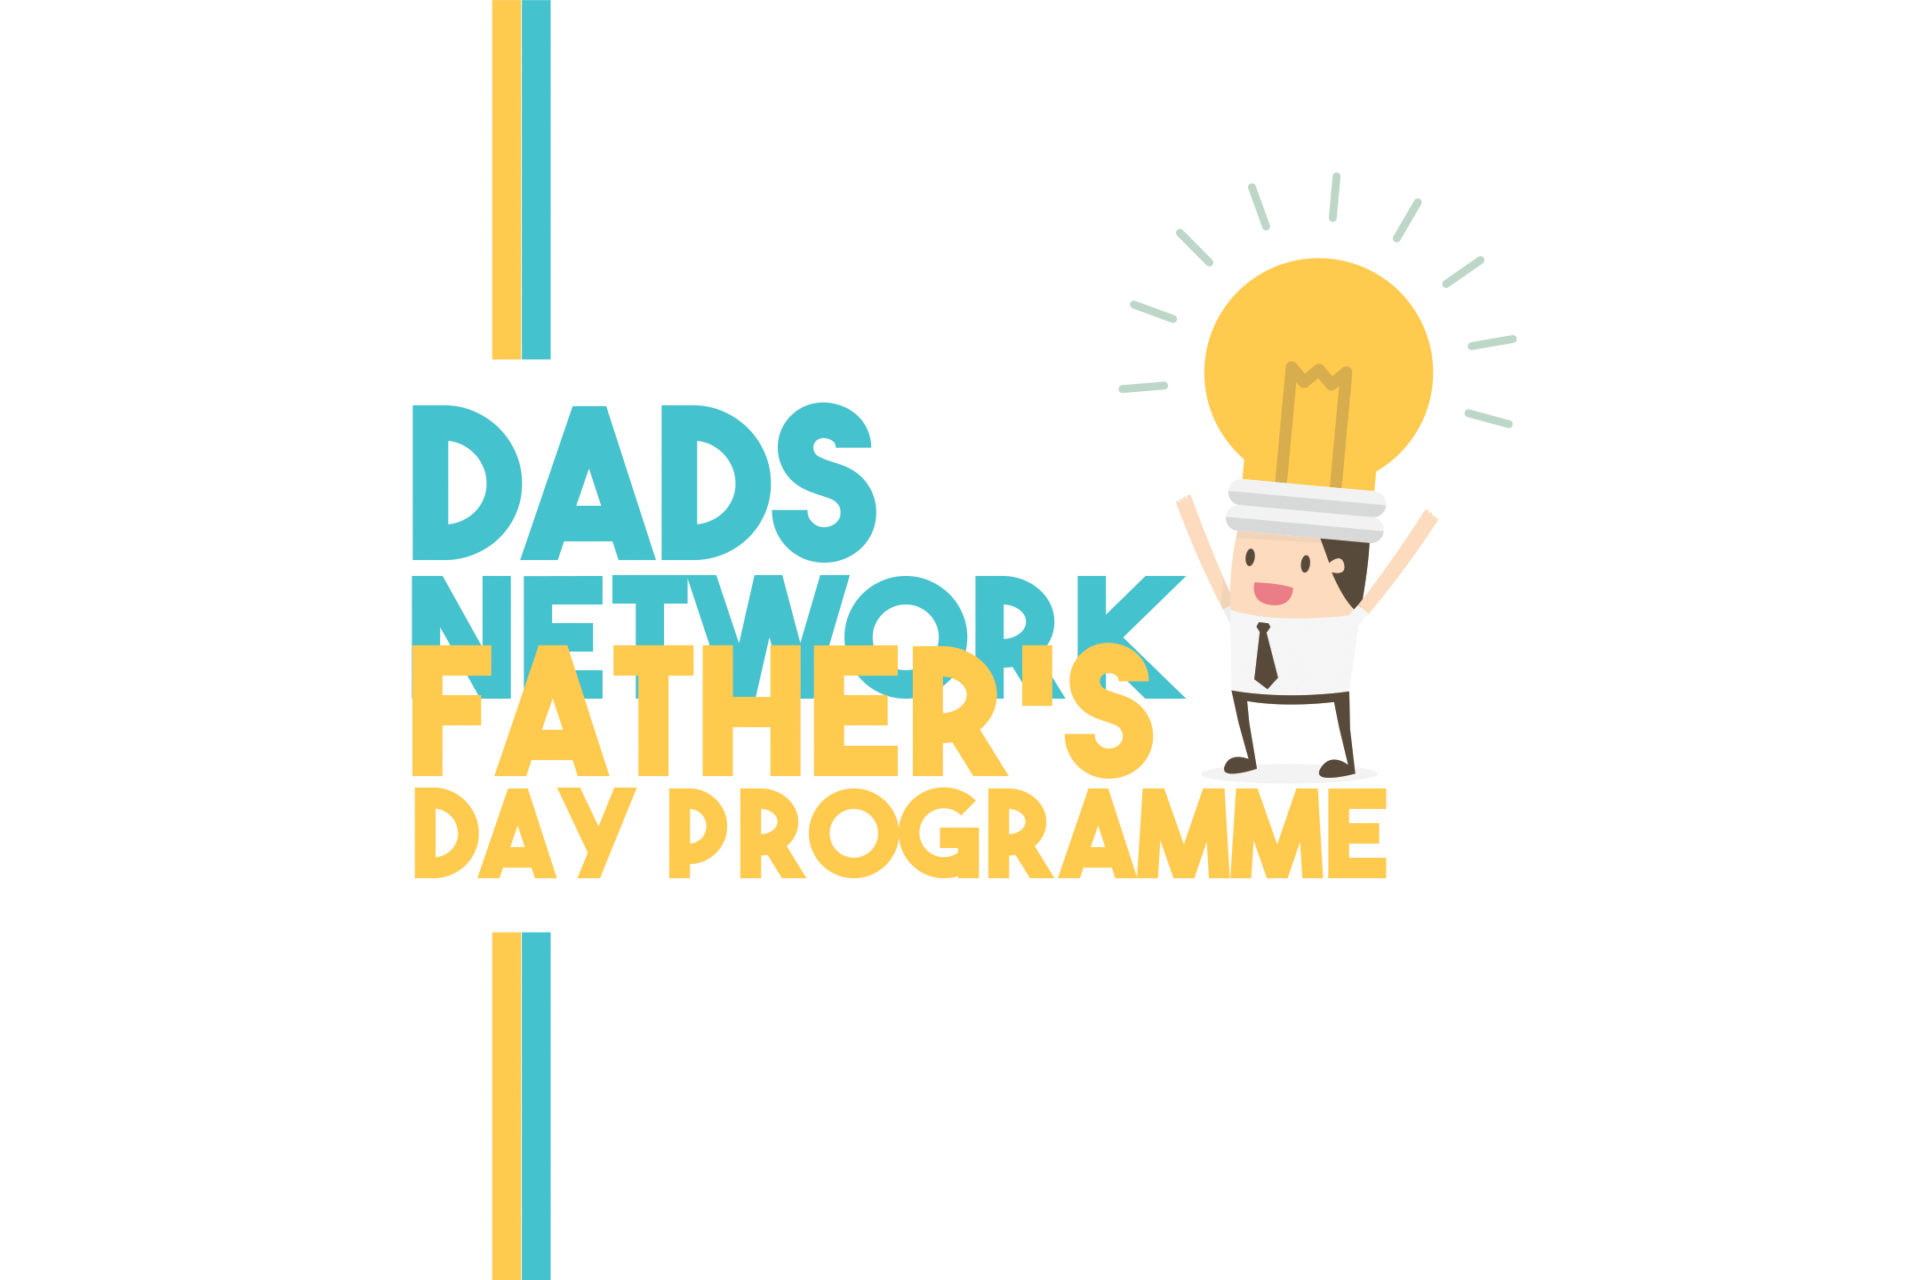 Dads Network Father's Day Programme - Challenges Media